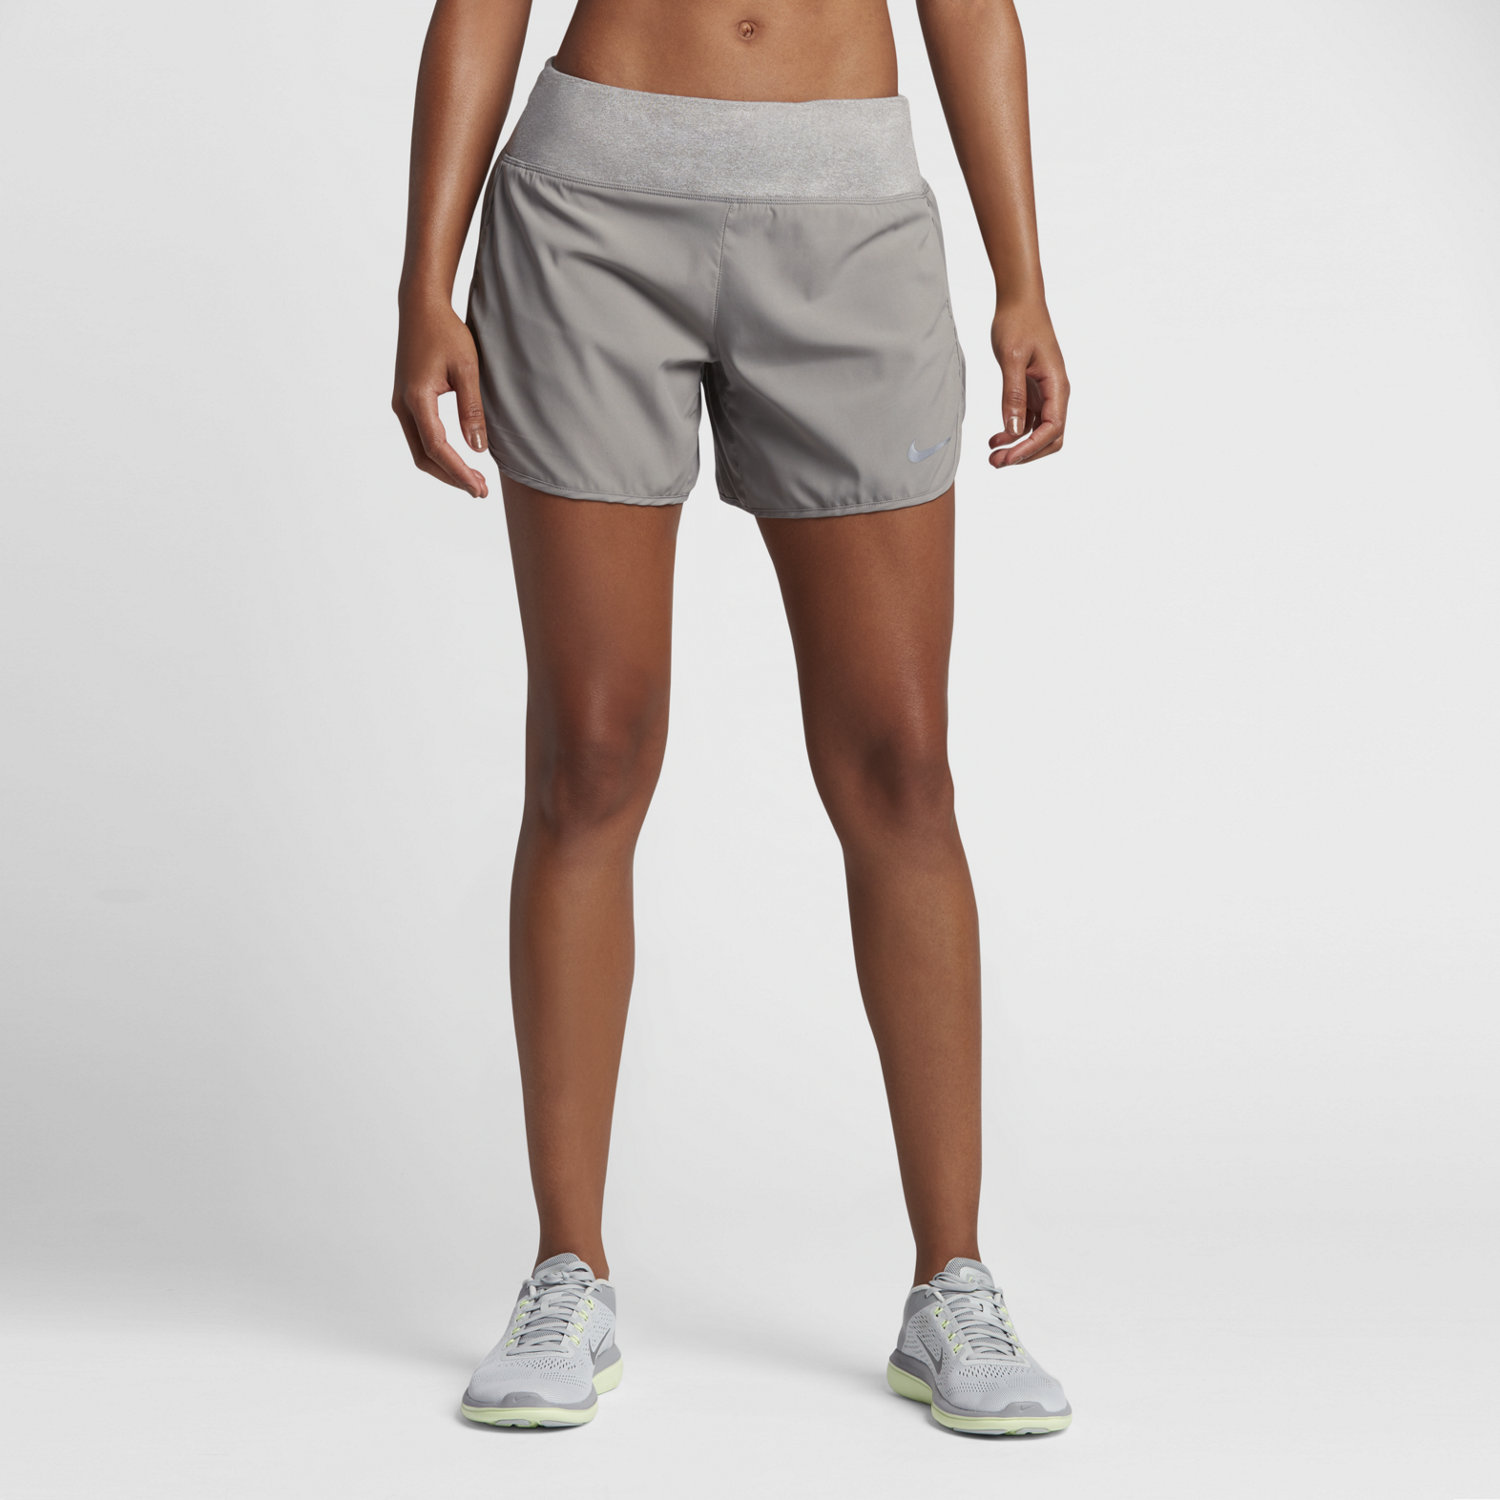 Nike womens running shorts with liner - Nike Womens Running Shorts With Liner 32